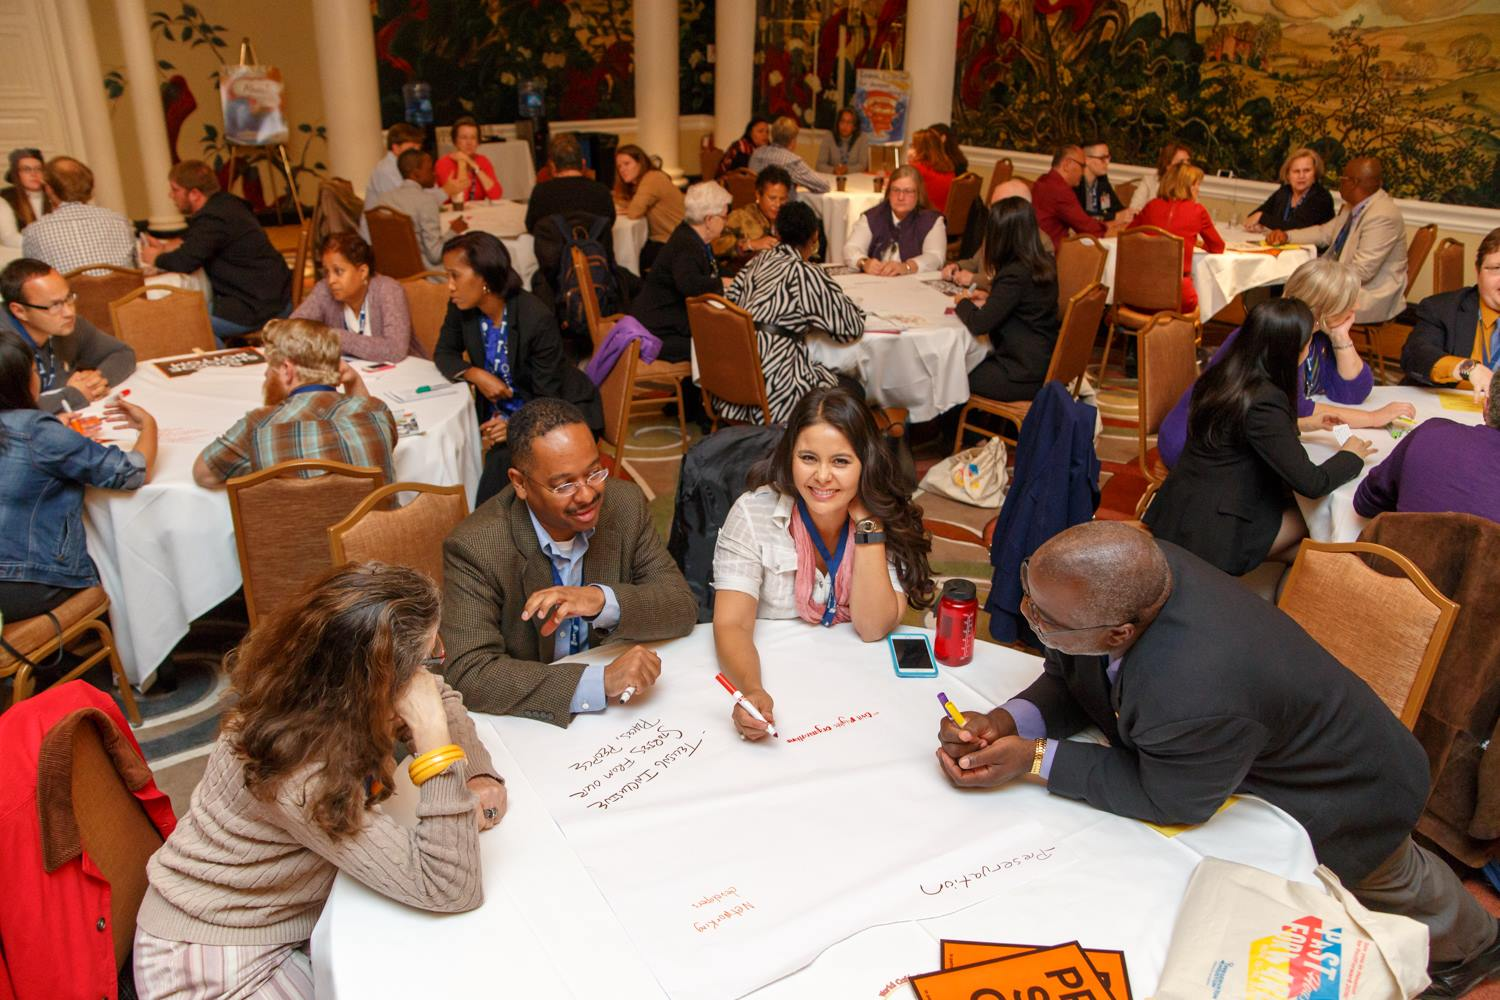 Participants during the Diversity Summit breakout at PastForward 2015. | Credit: David Keith Photography